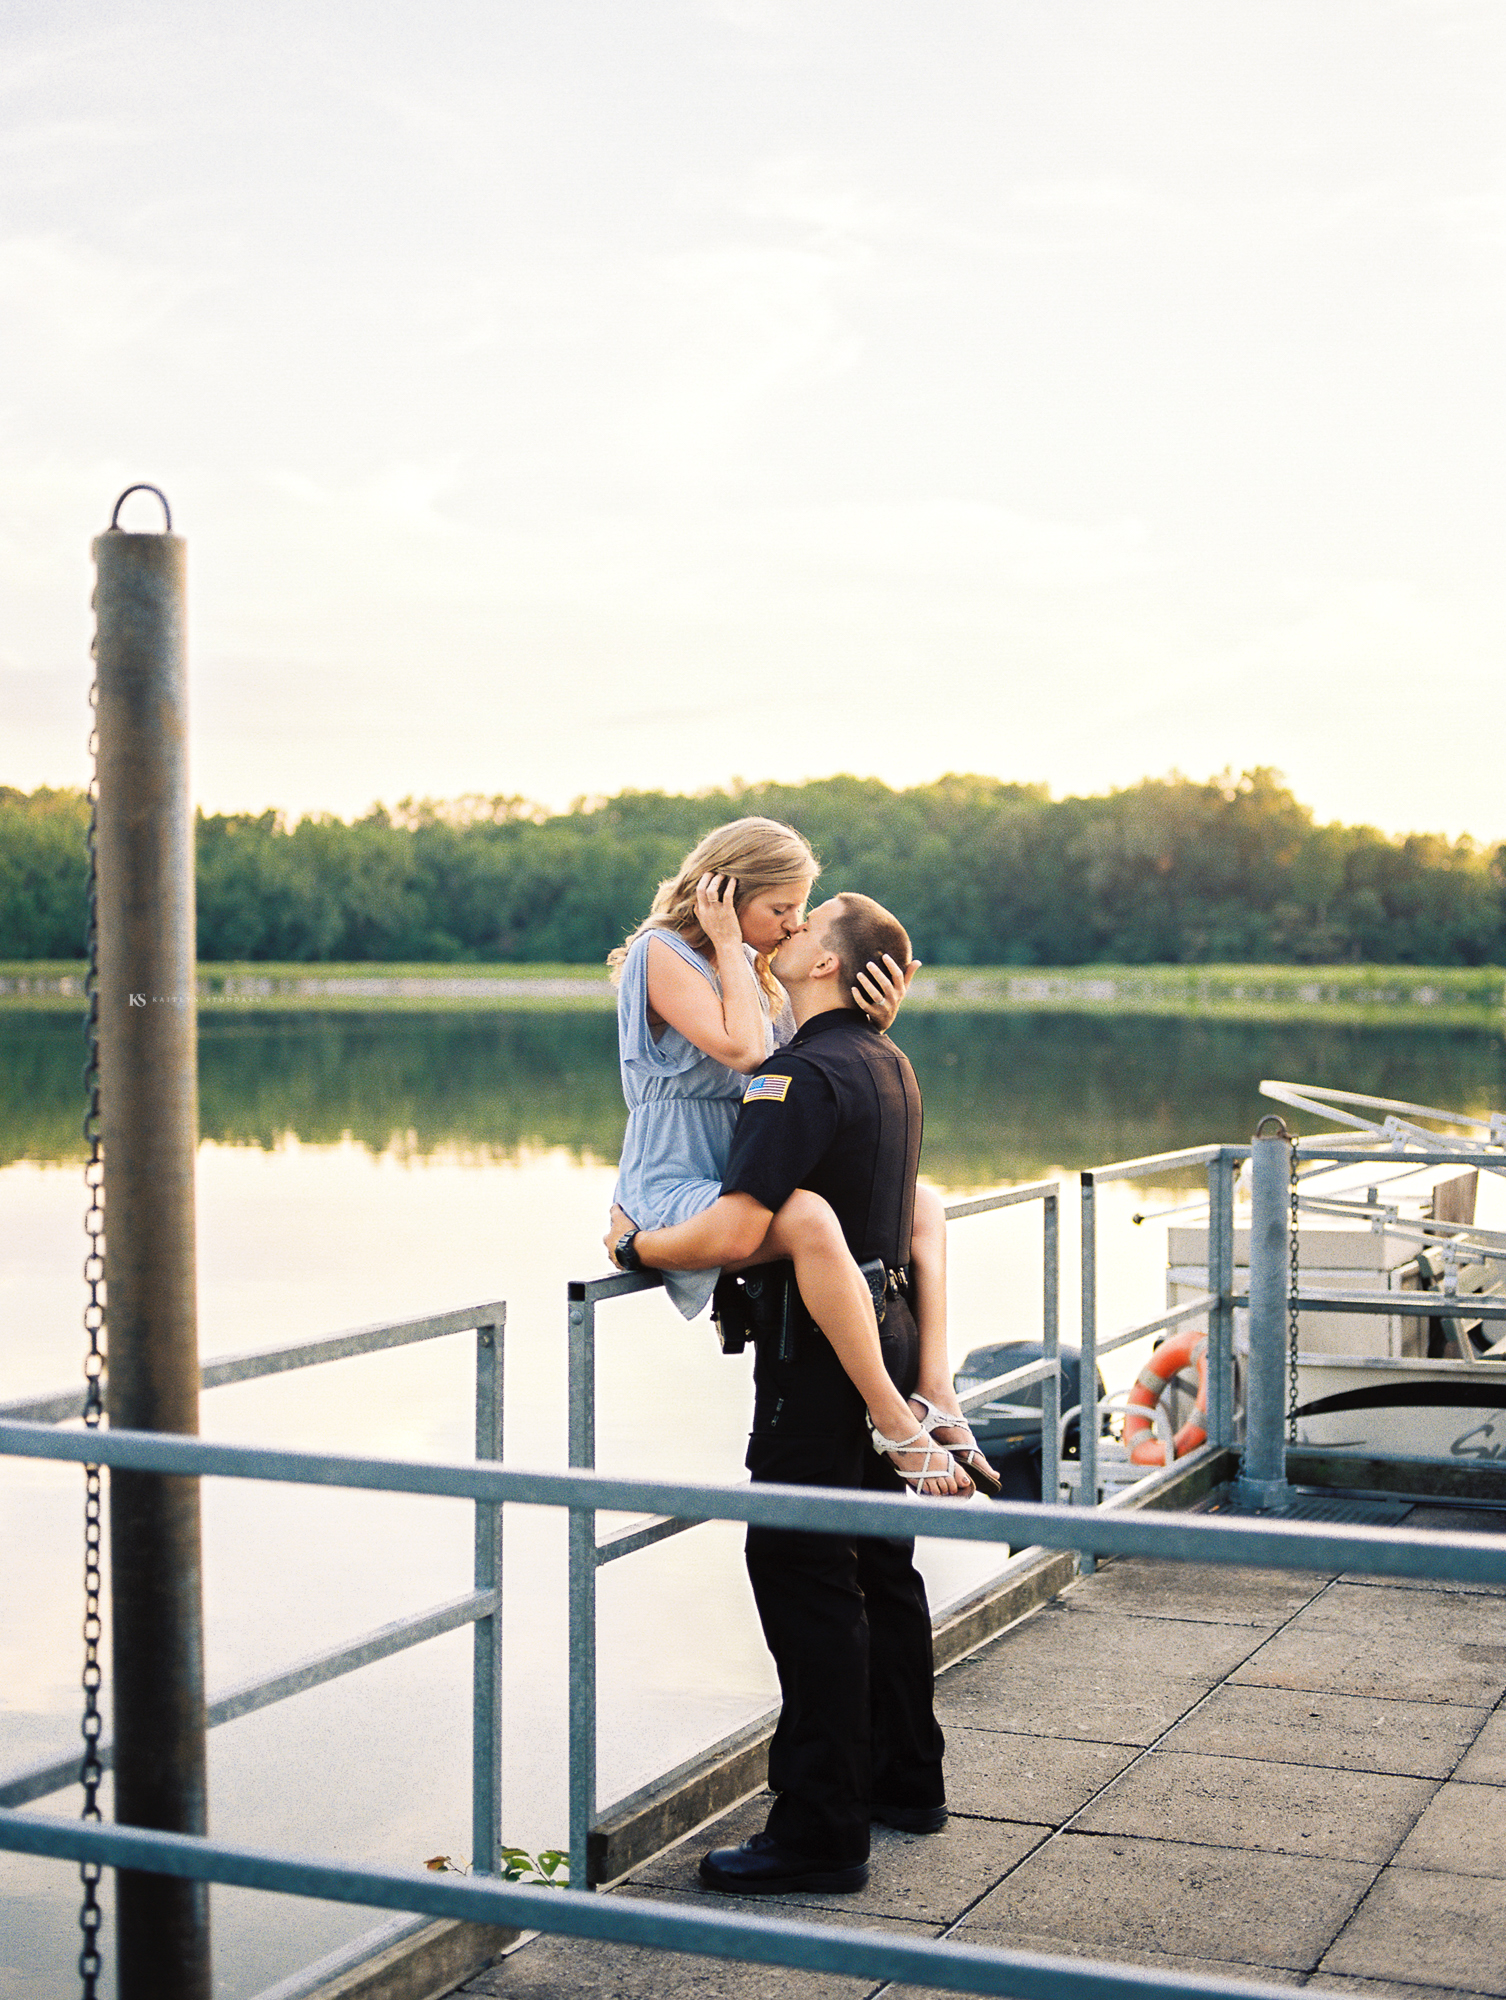 Stephanie & Mark - Engaged - © Kaitlyn Stoddard-Carter-1.jpg